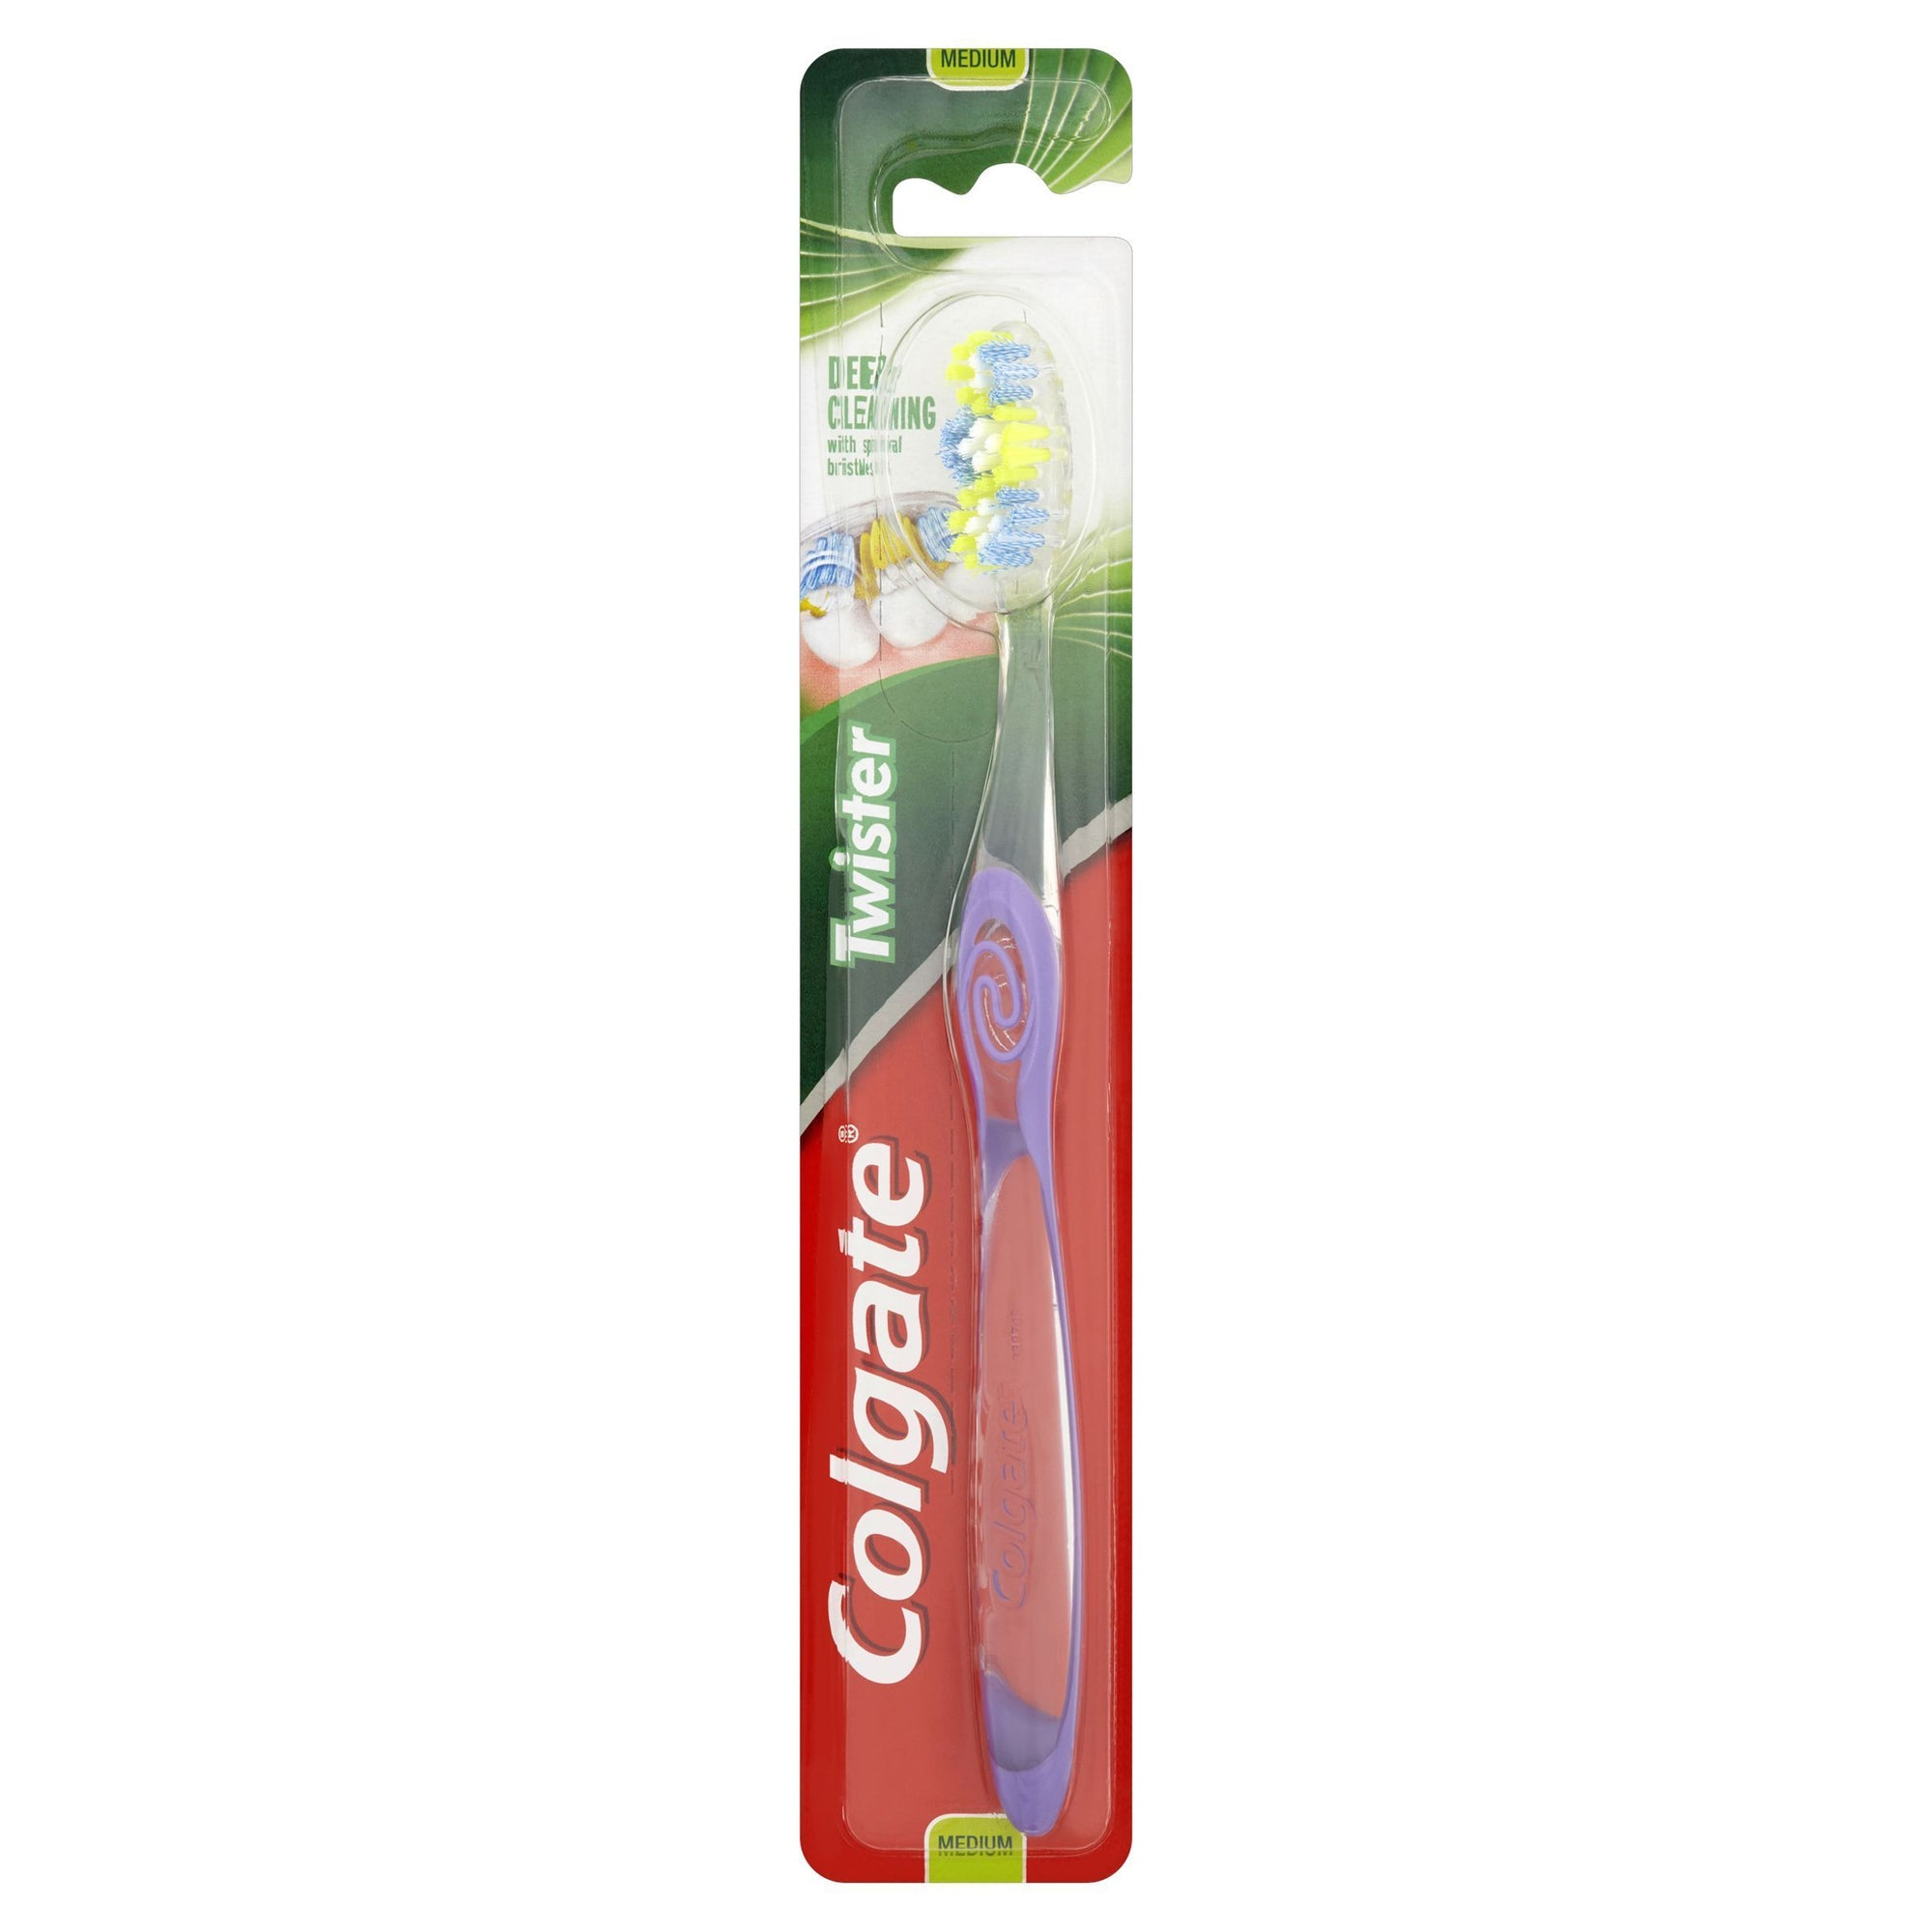 Colgate Twister Fresh Medium Toothbrush - Pack of 12